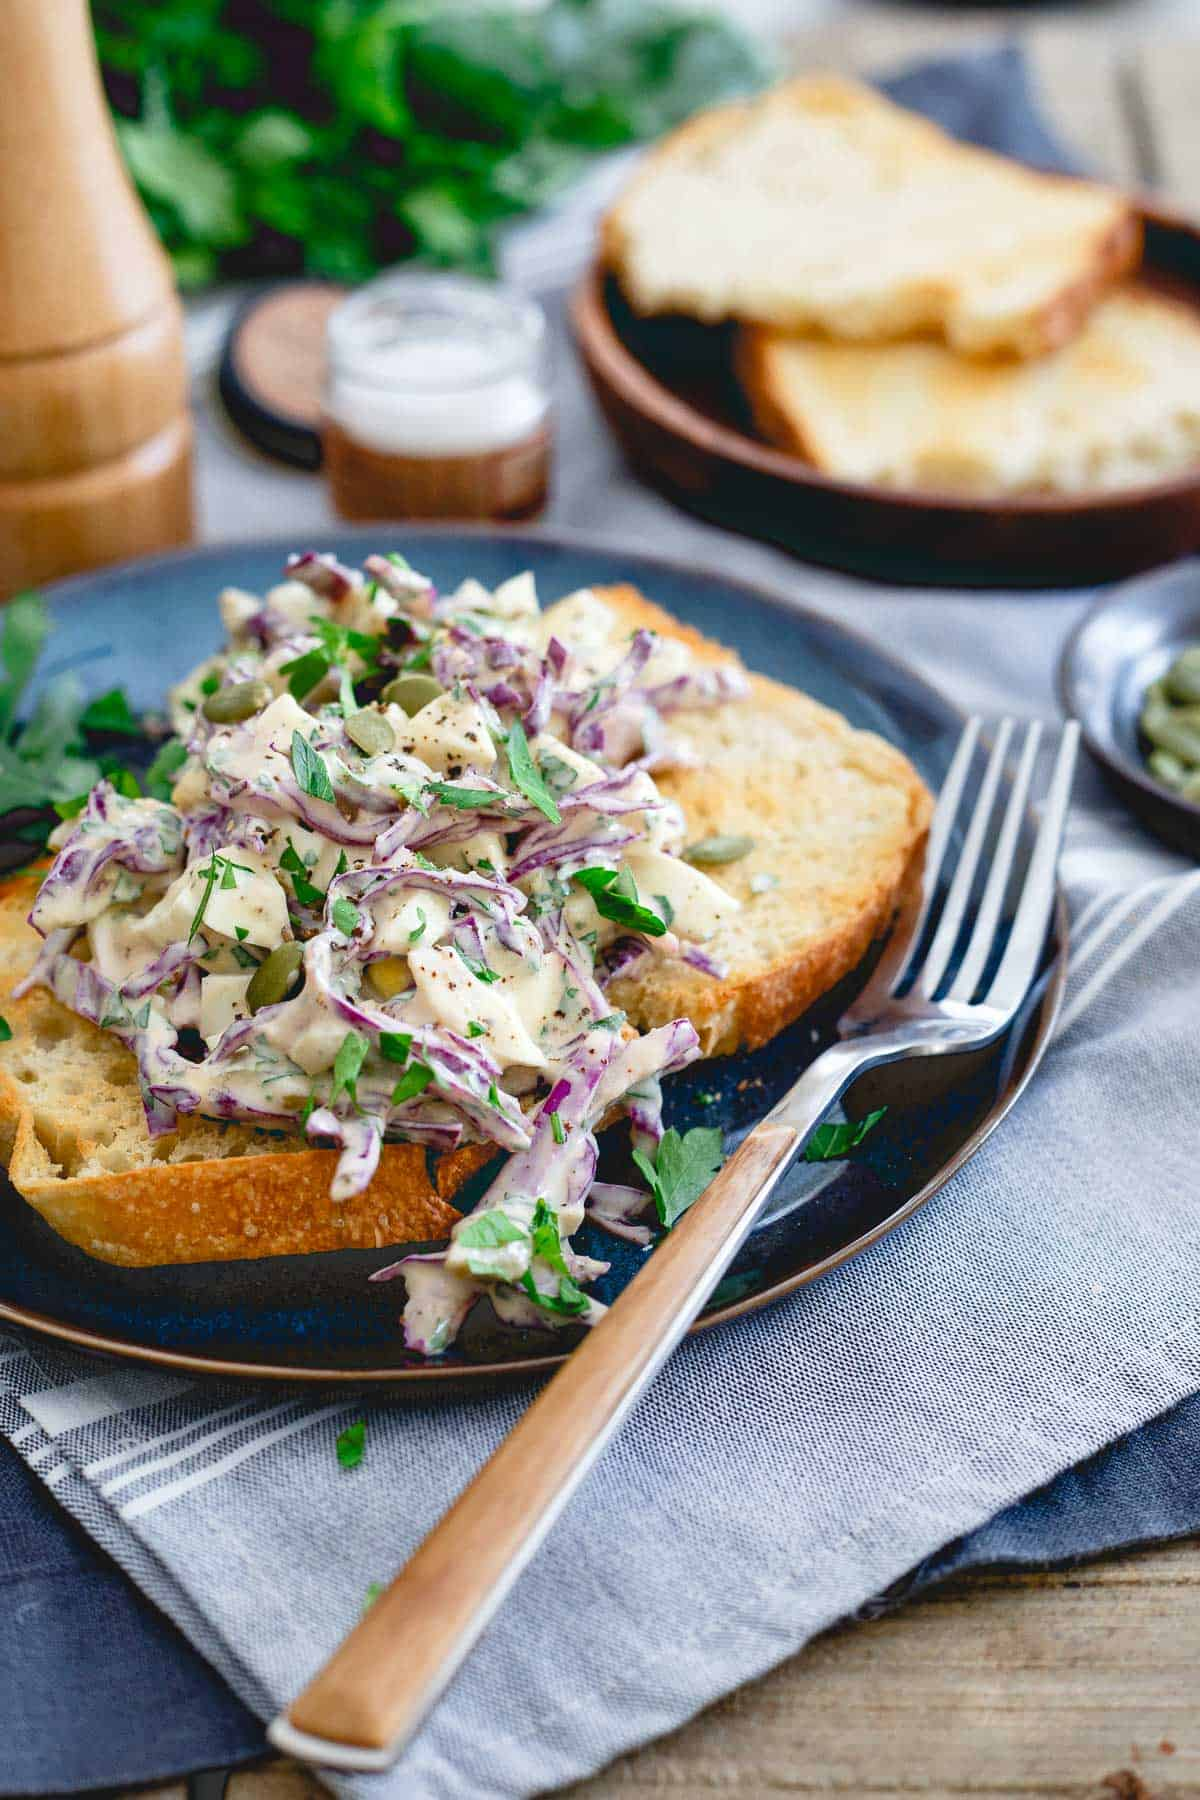 A creamy egg salad made with Greek yogurt and dijon mustard to keep it on the healthier side without any loss of flavor!